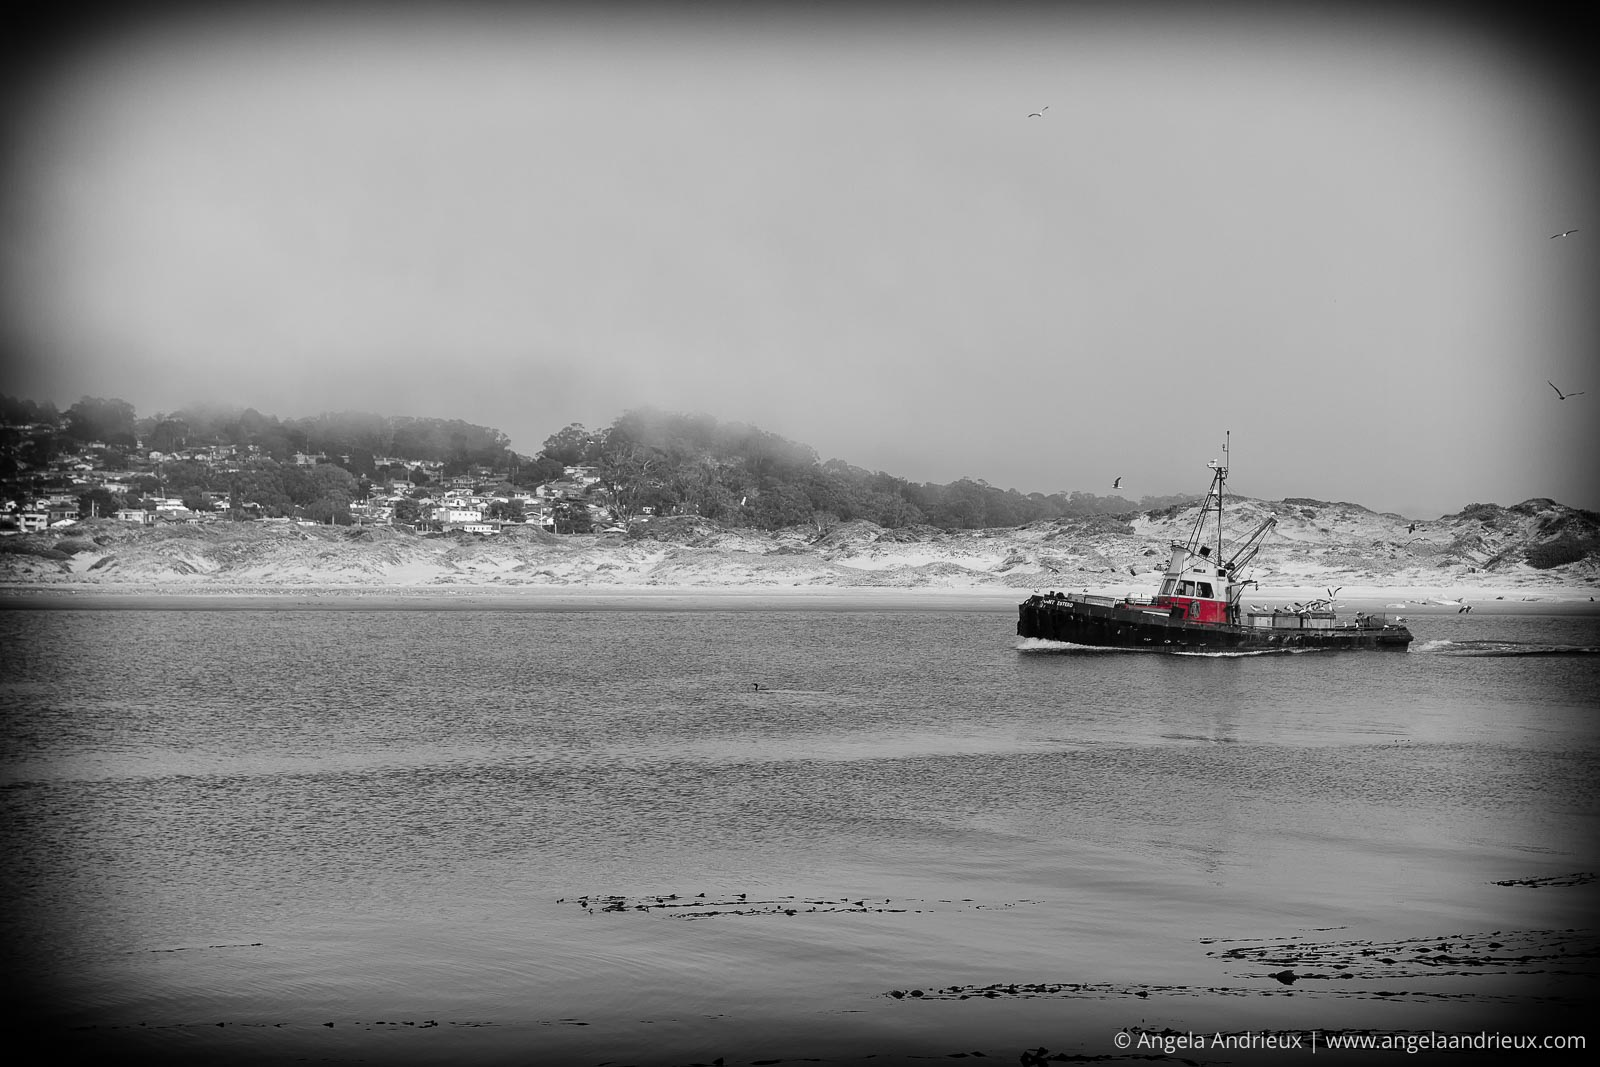 Returning with the day's catch | Morro Bay, CA | Selective Color